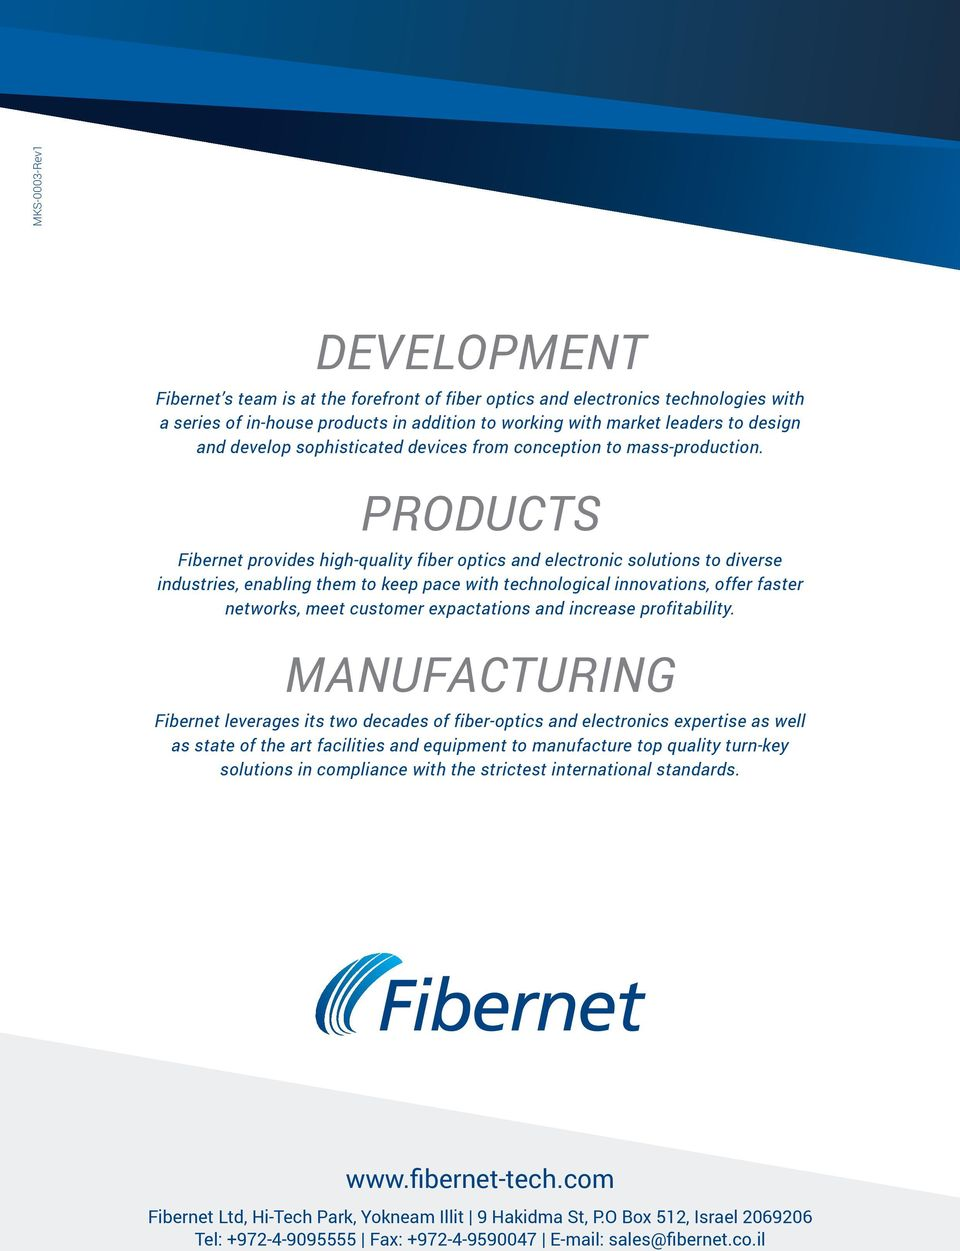 PRODUCTS Fibernet provides high-quality fiber optics and electronic solutions to diverse industries, enabling them to keep pace with technological innovations, offer faster networks, meet customer